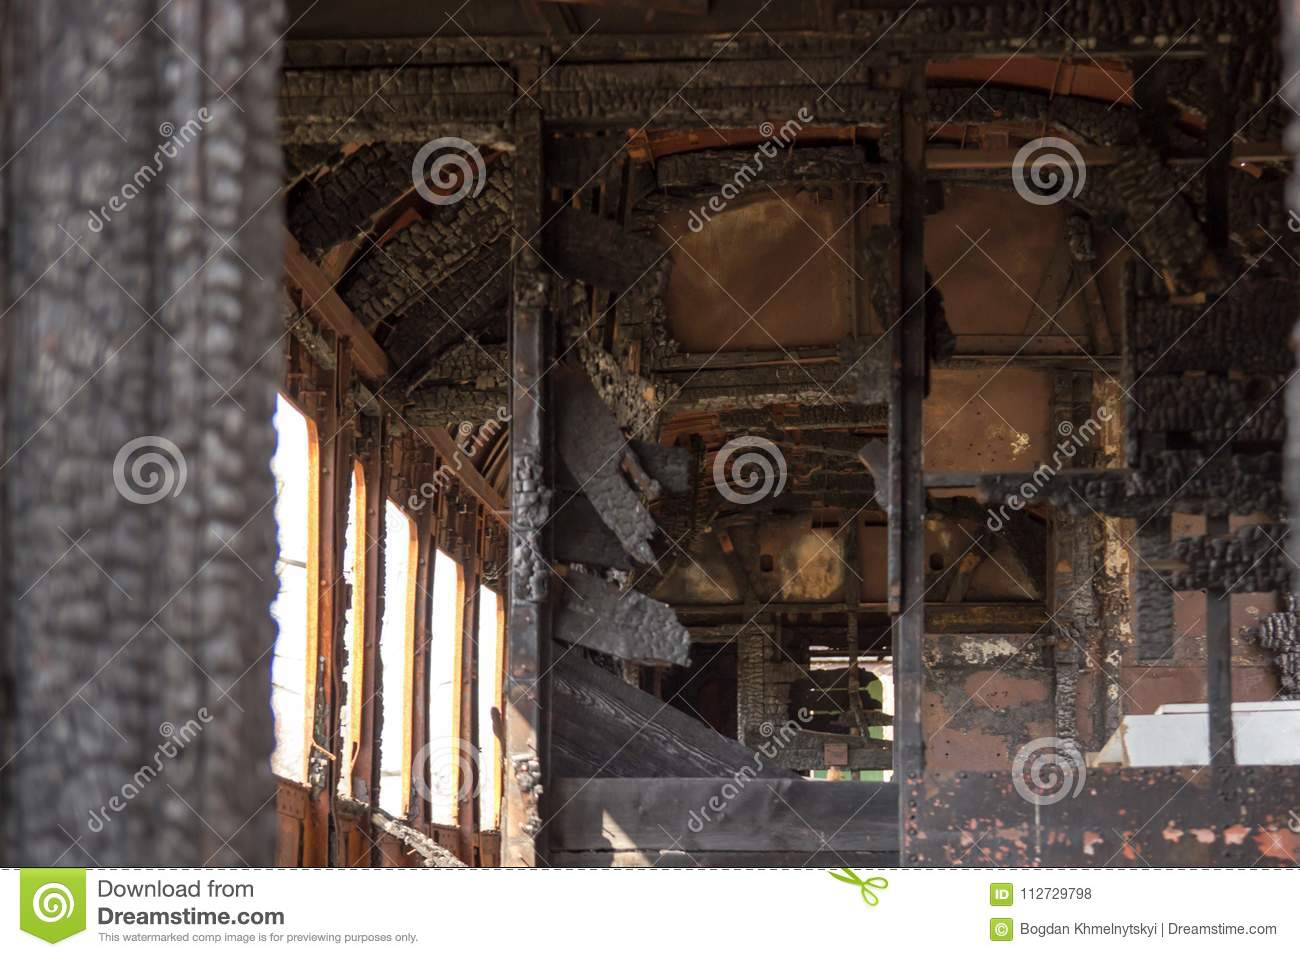 The train wagon burnt from the inside